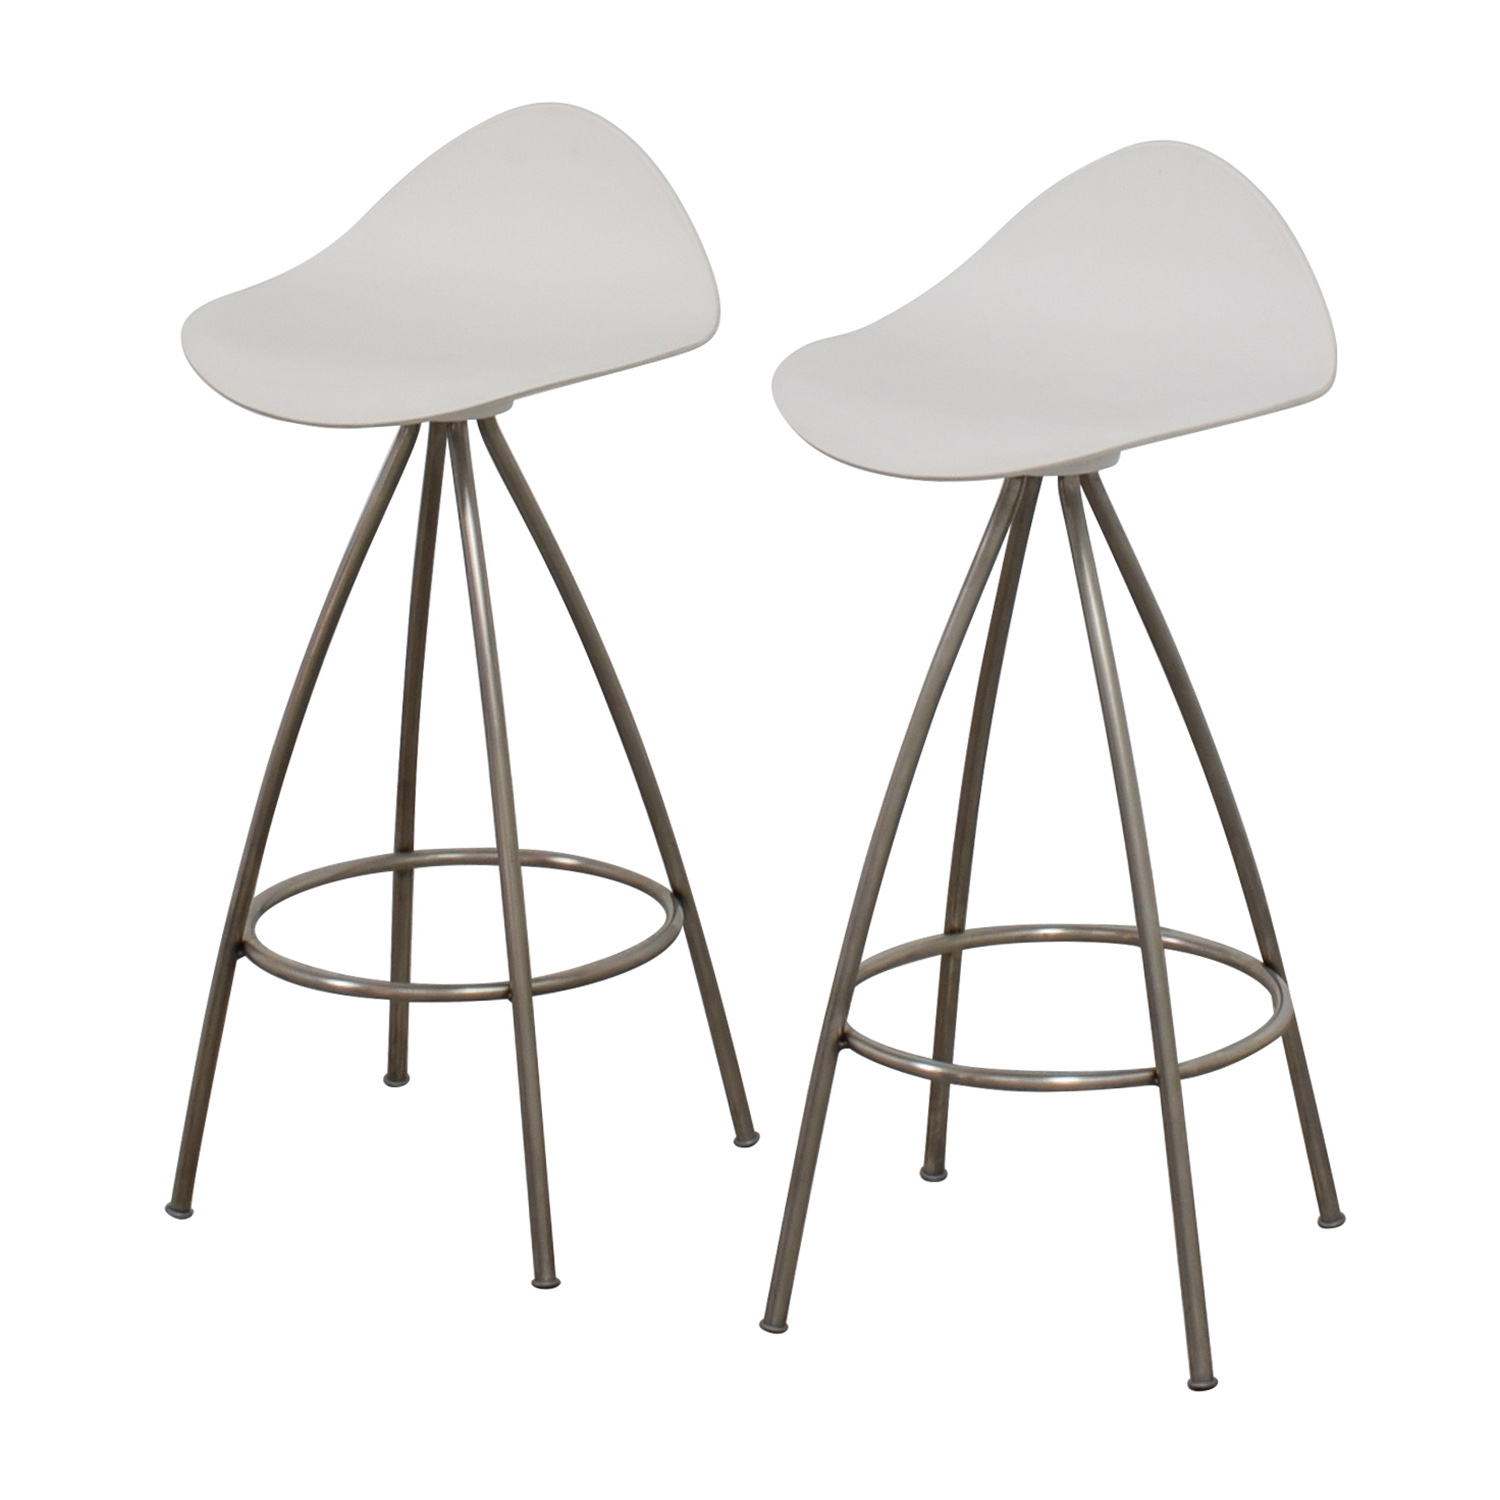 85 Off Design Within Reach Dwr Onda Counter Stool Chairs